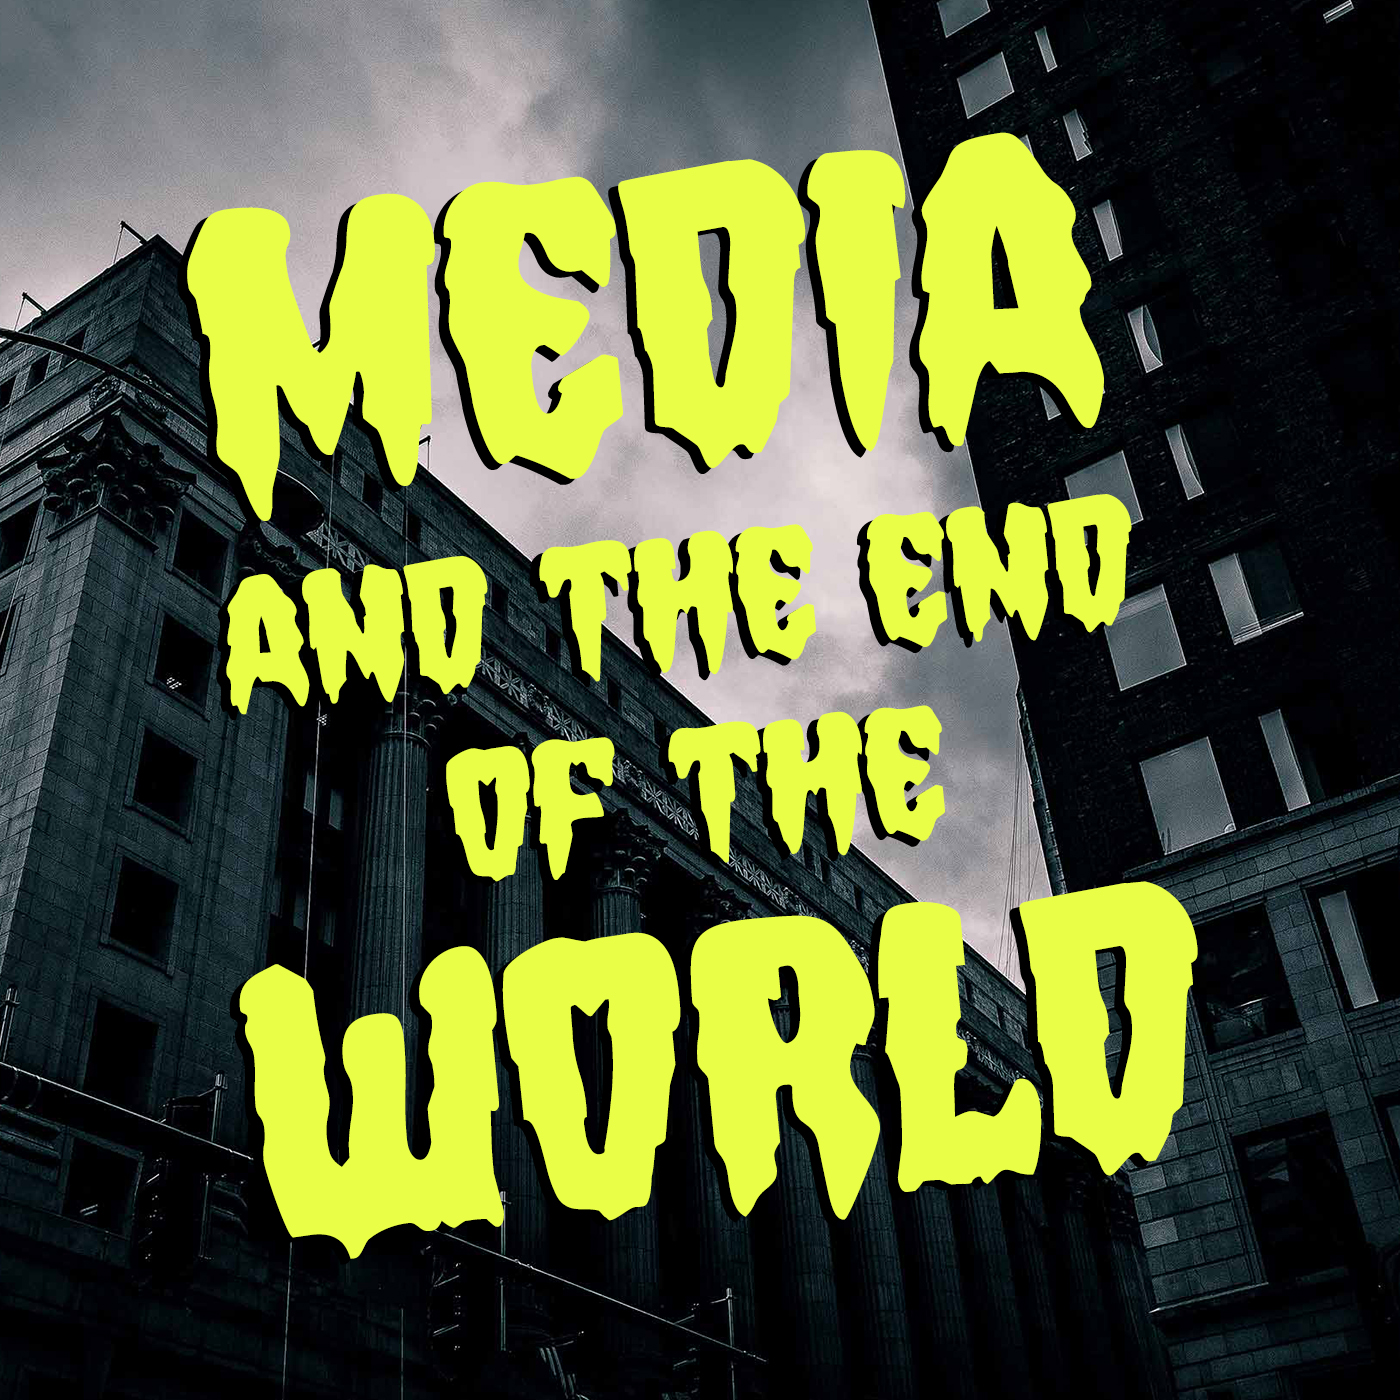 Media and the End of the World